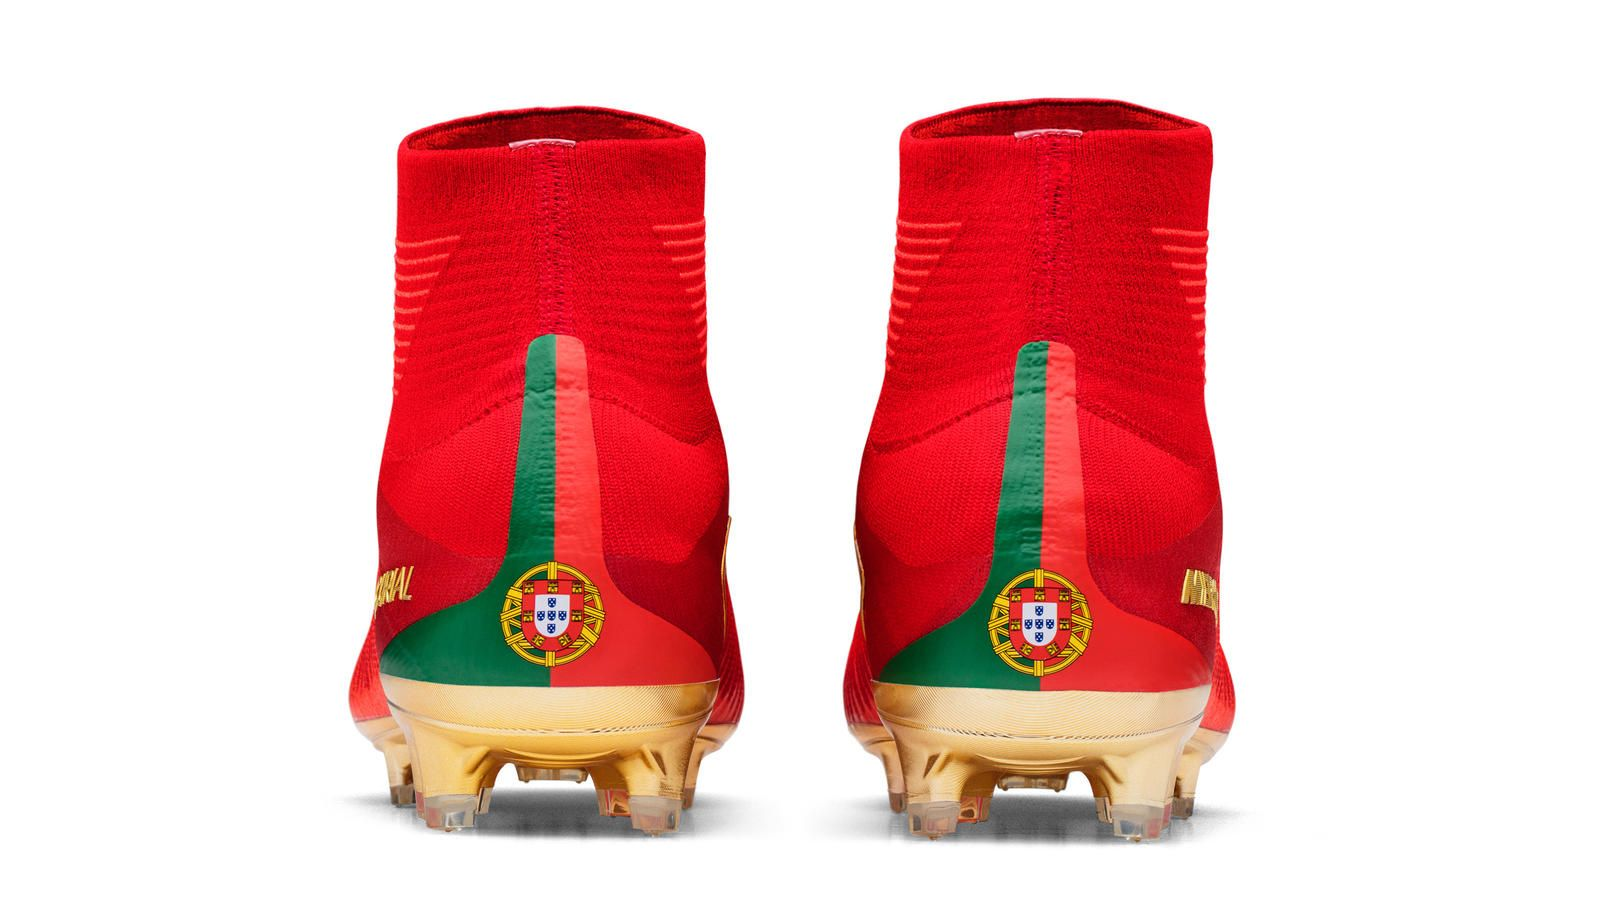 2f3072532 As Cristiano Ronaldo looks to continue his amazing run, Nike personalizes special  boots just for him. CR7 CAMPEOES Botines Nike Mercurial ...